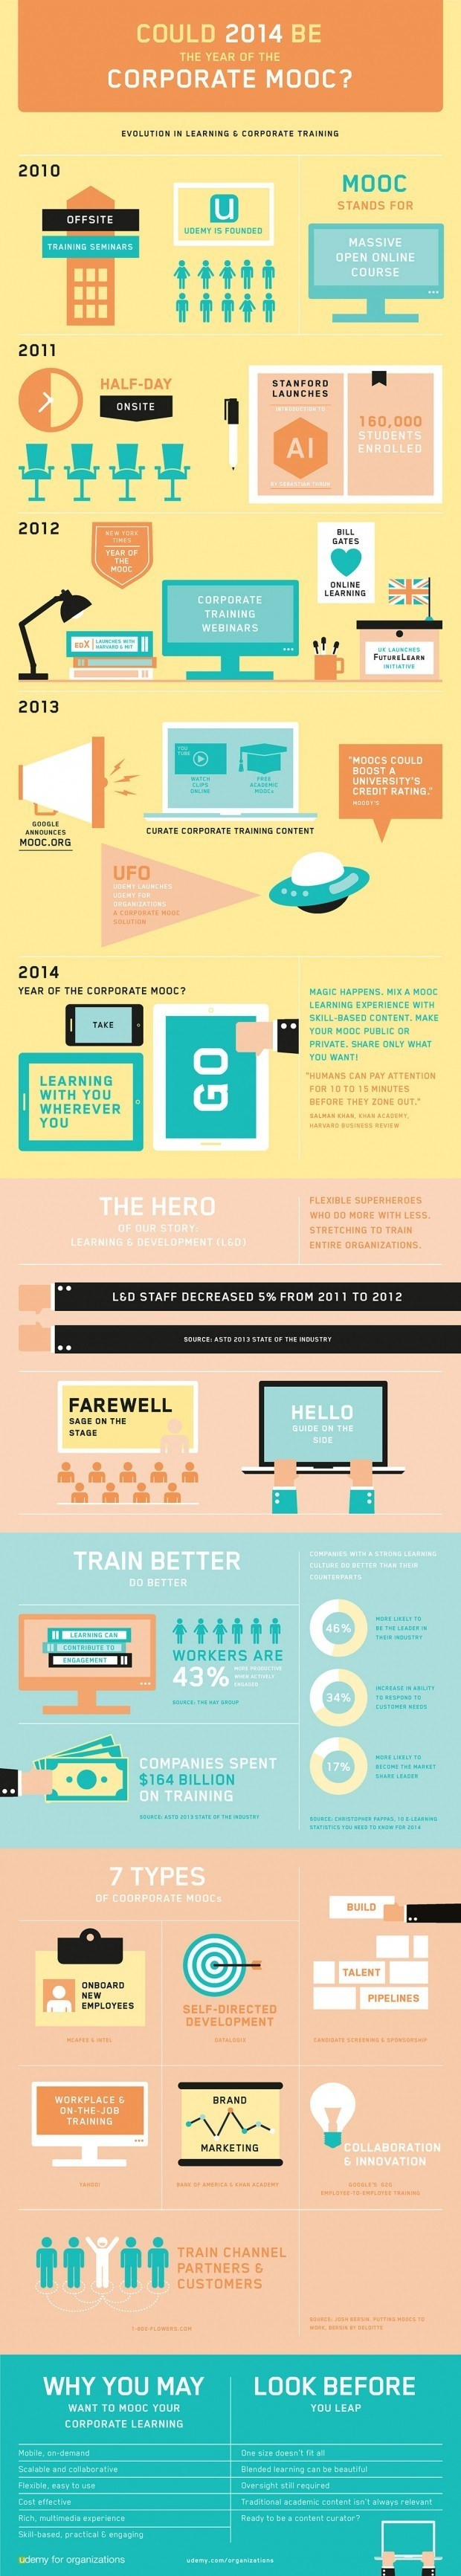 Is 2014 the Year of the Corporate MOOC? Infographic | e-Learning Infographics thumbnail